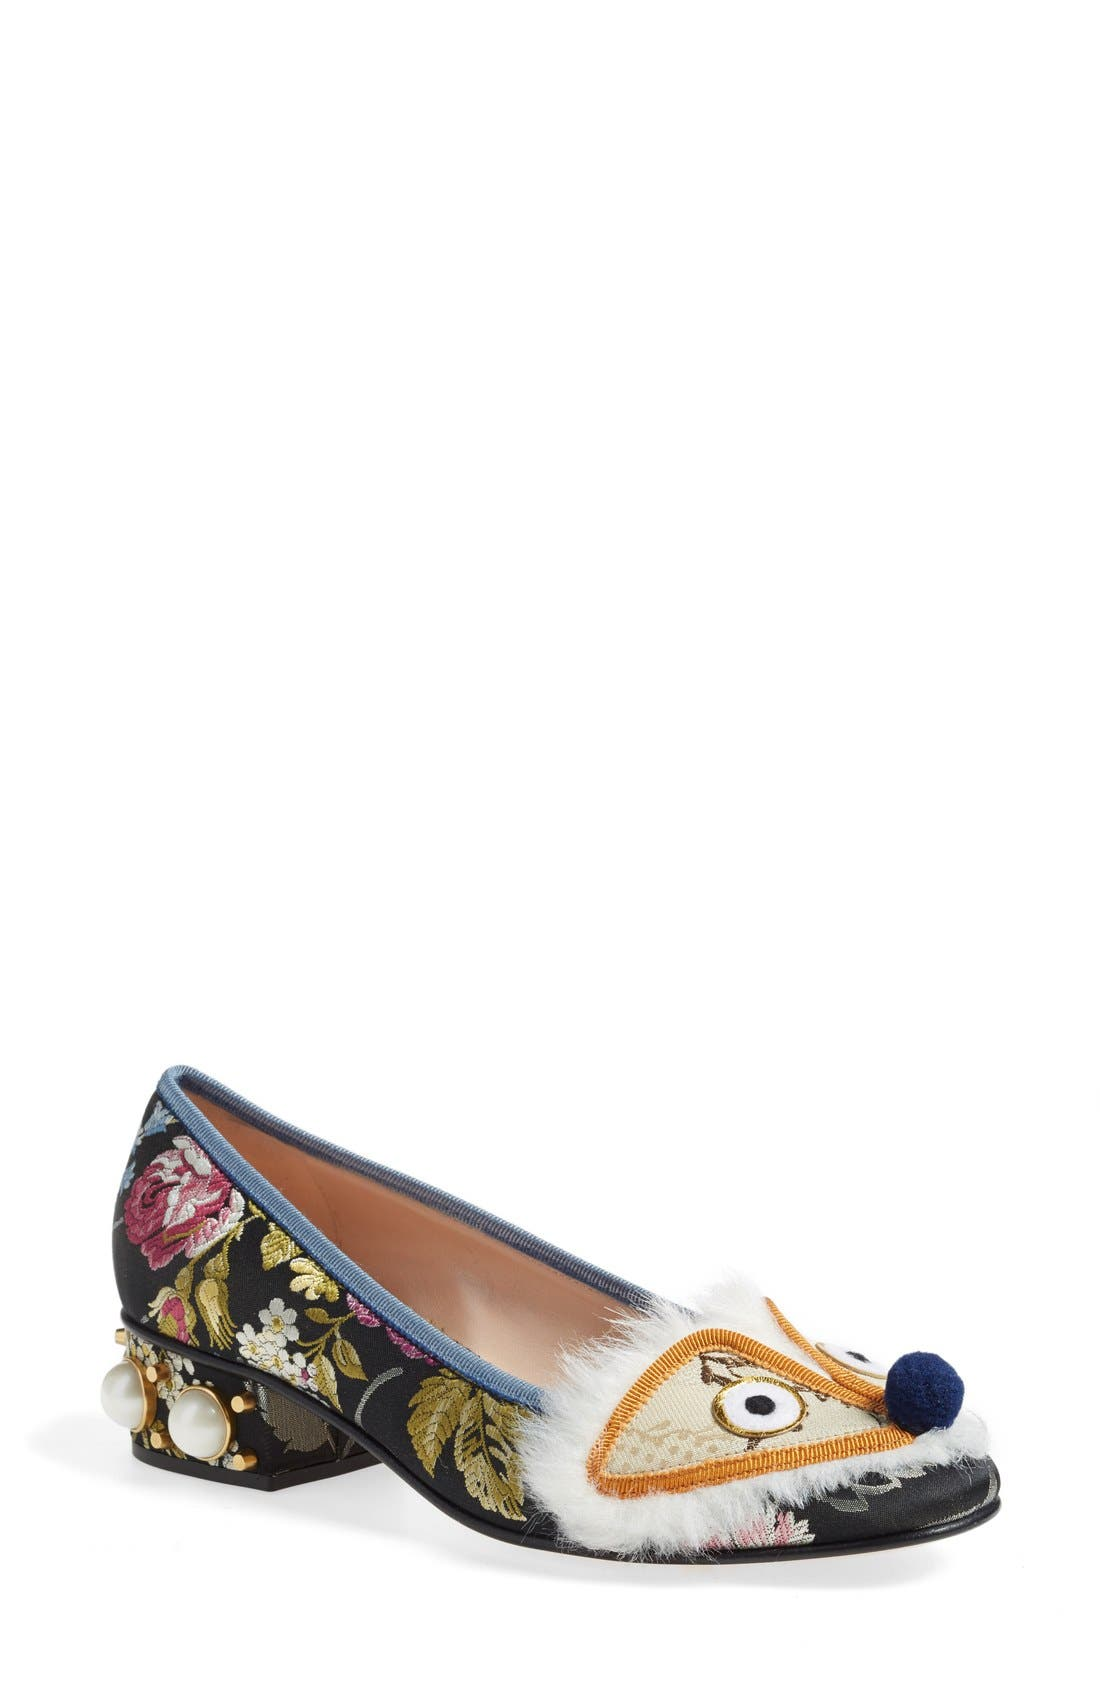 GUCCI 'Kimberly' Embellished Pump, Main, color, 020